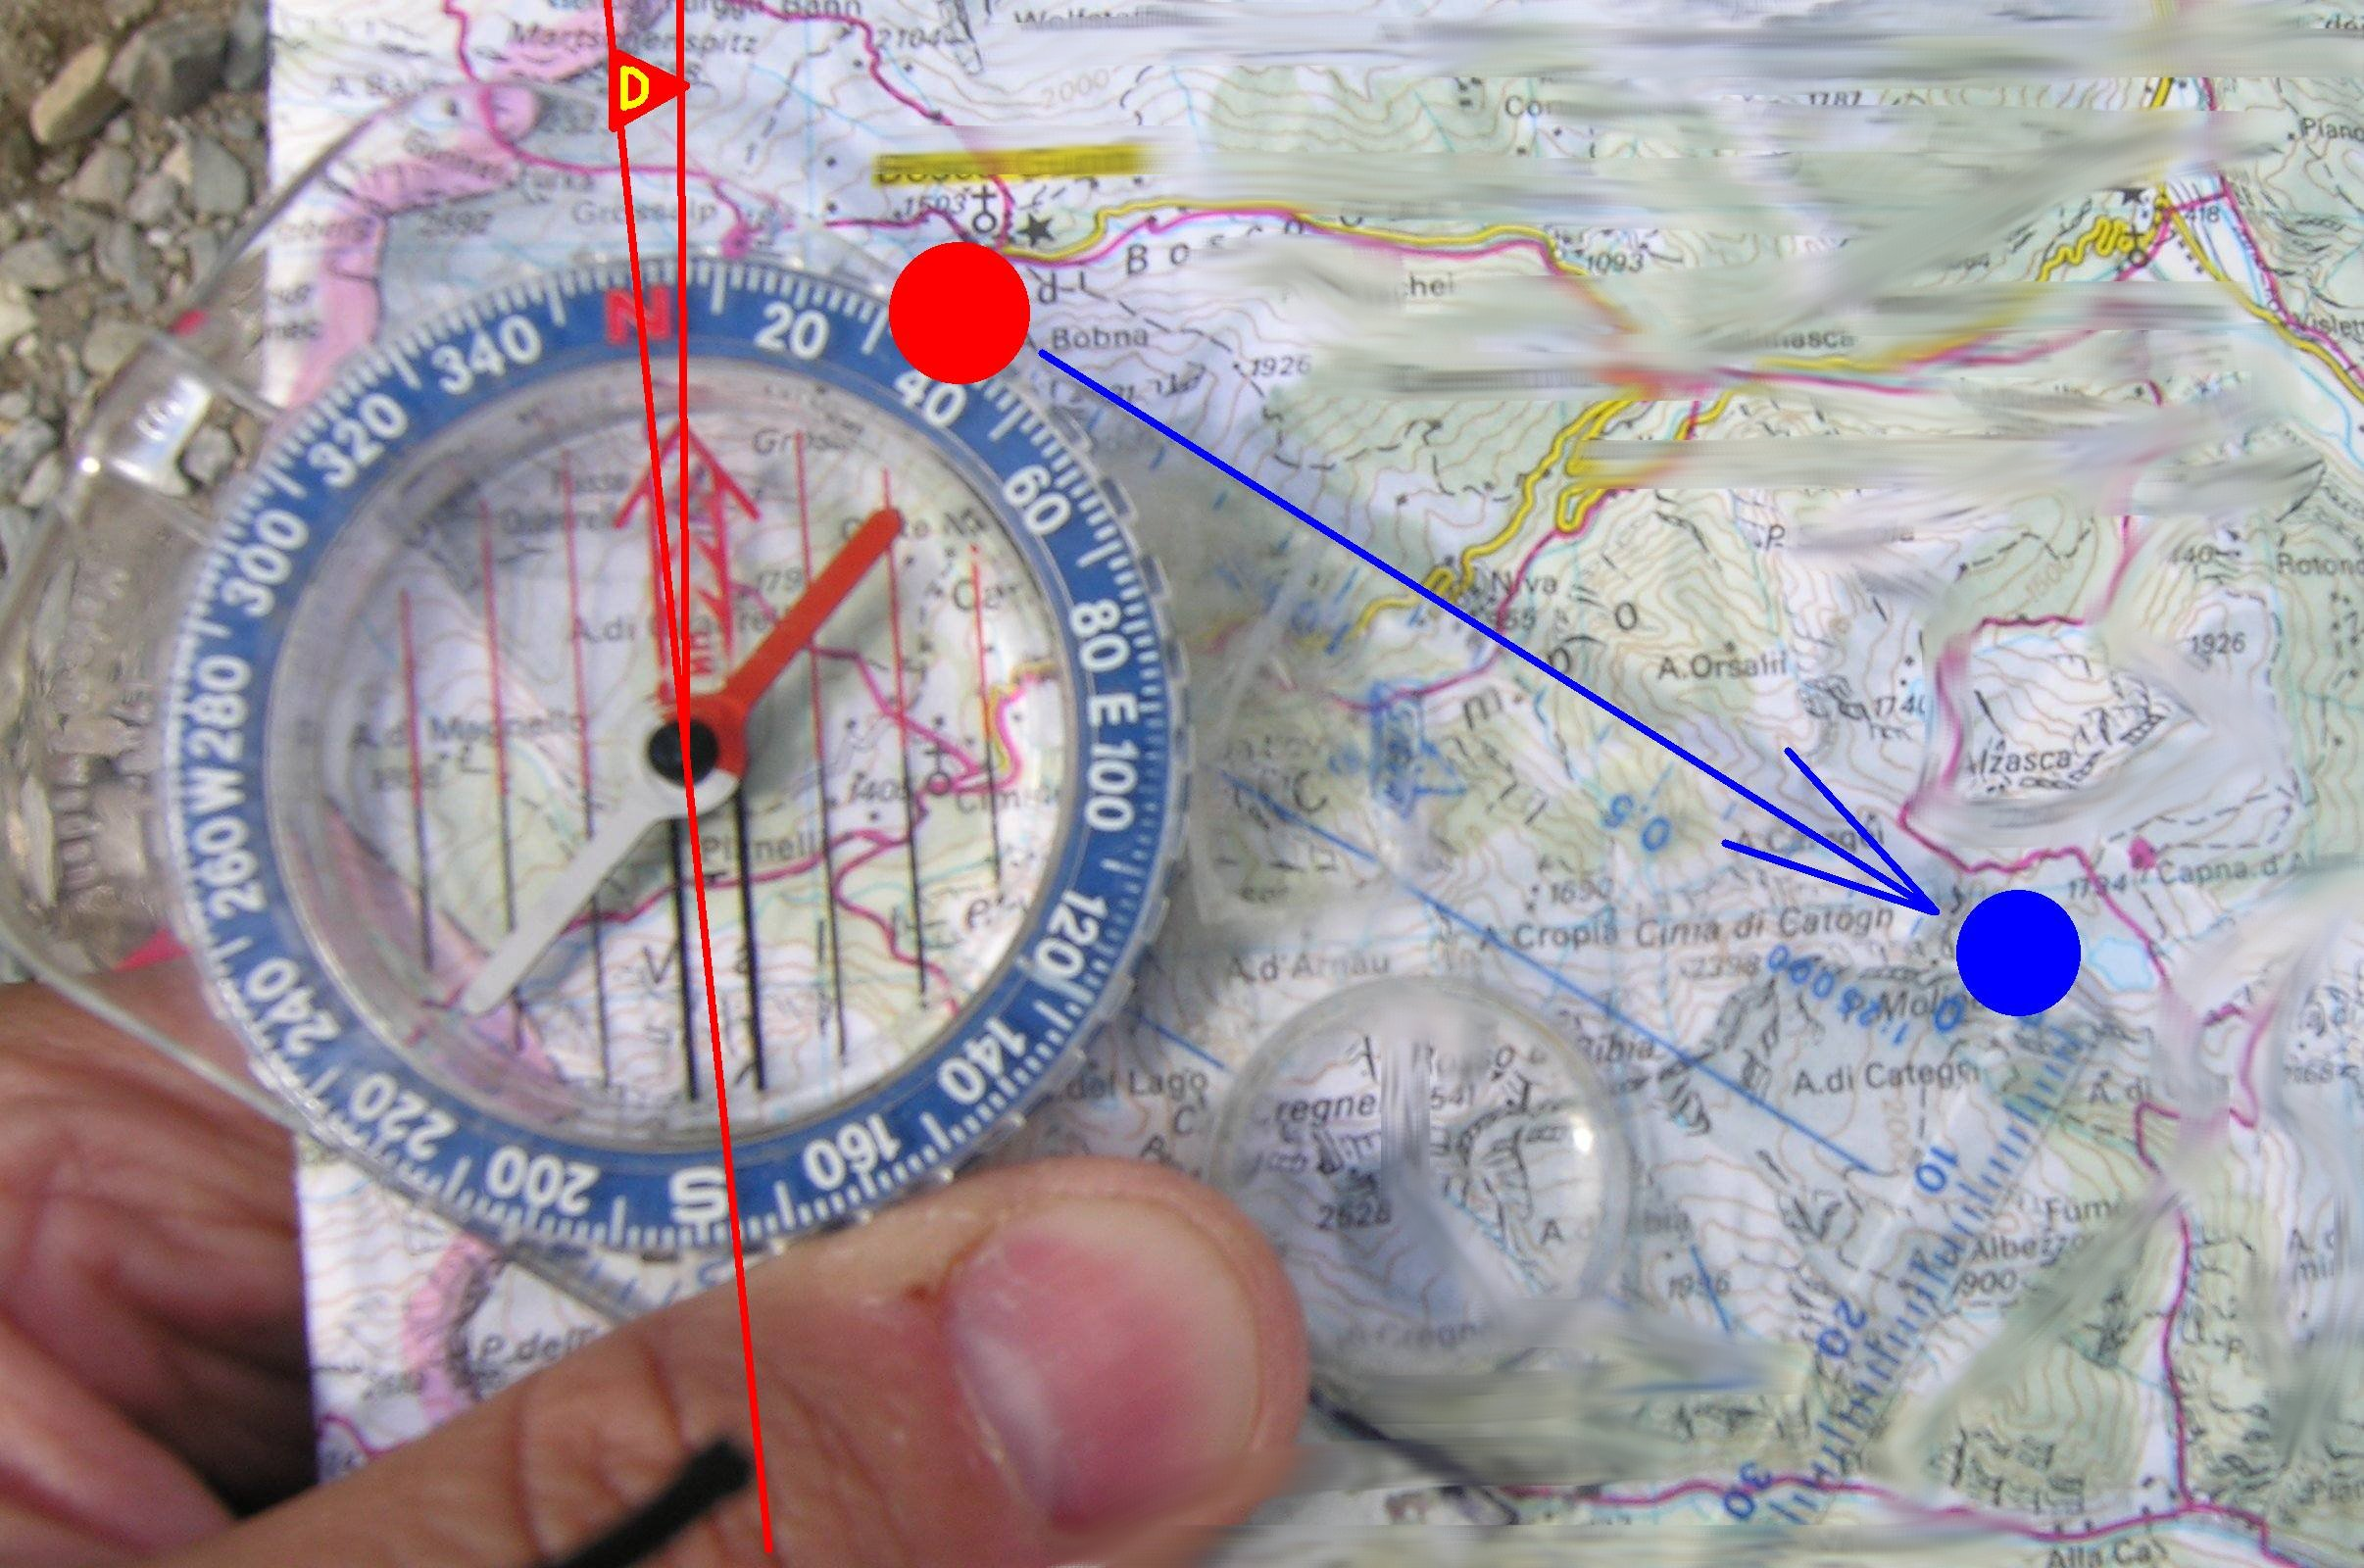 Orienteering compass and map